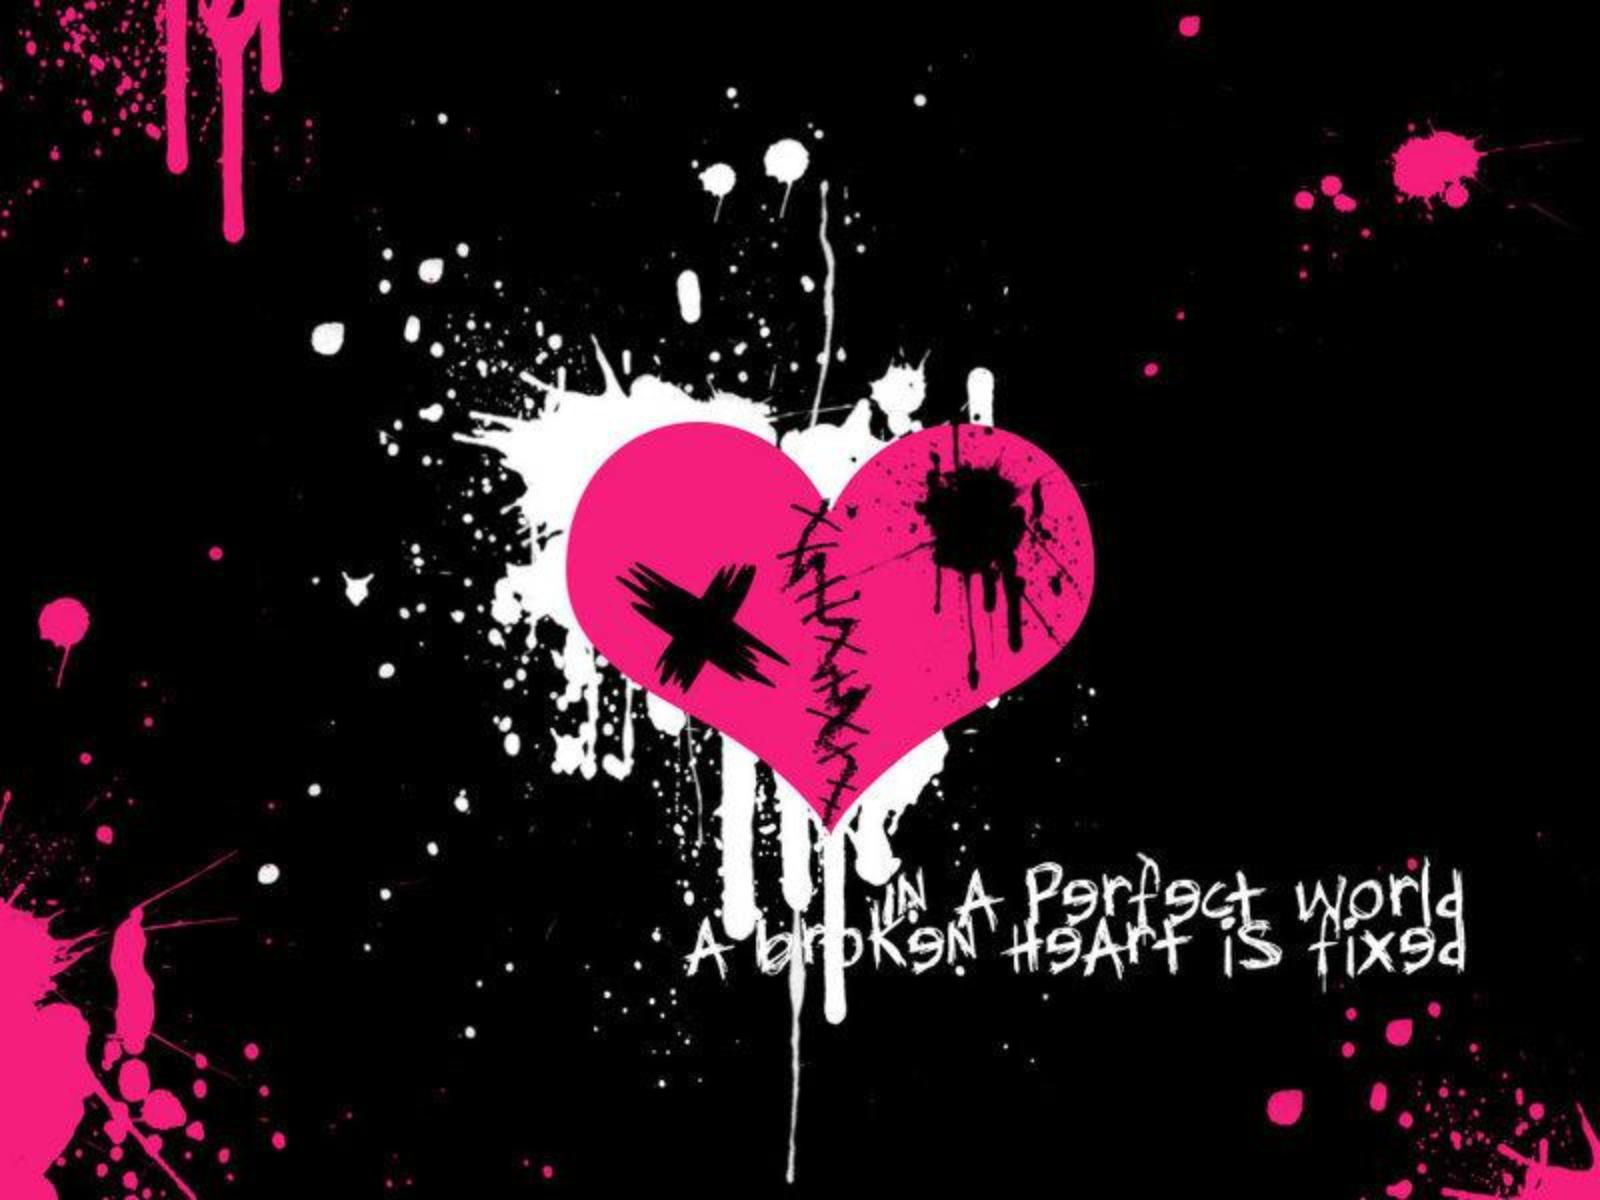 Hd Wallpaper Emo Love couple : heart wallpapers emo - HD Desktop Wallpapers 4k HD